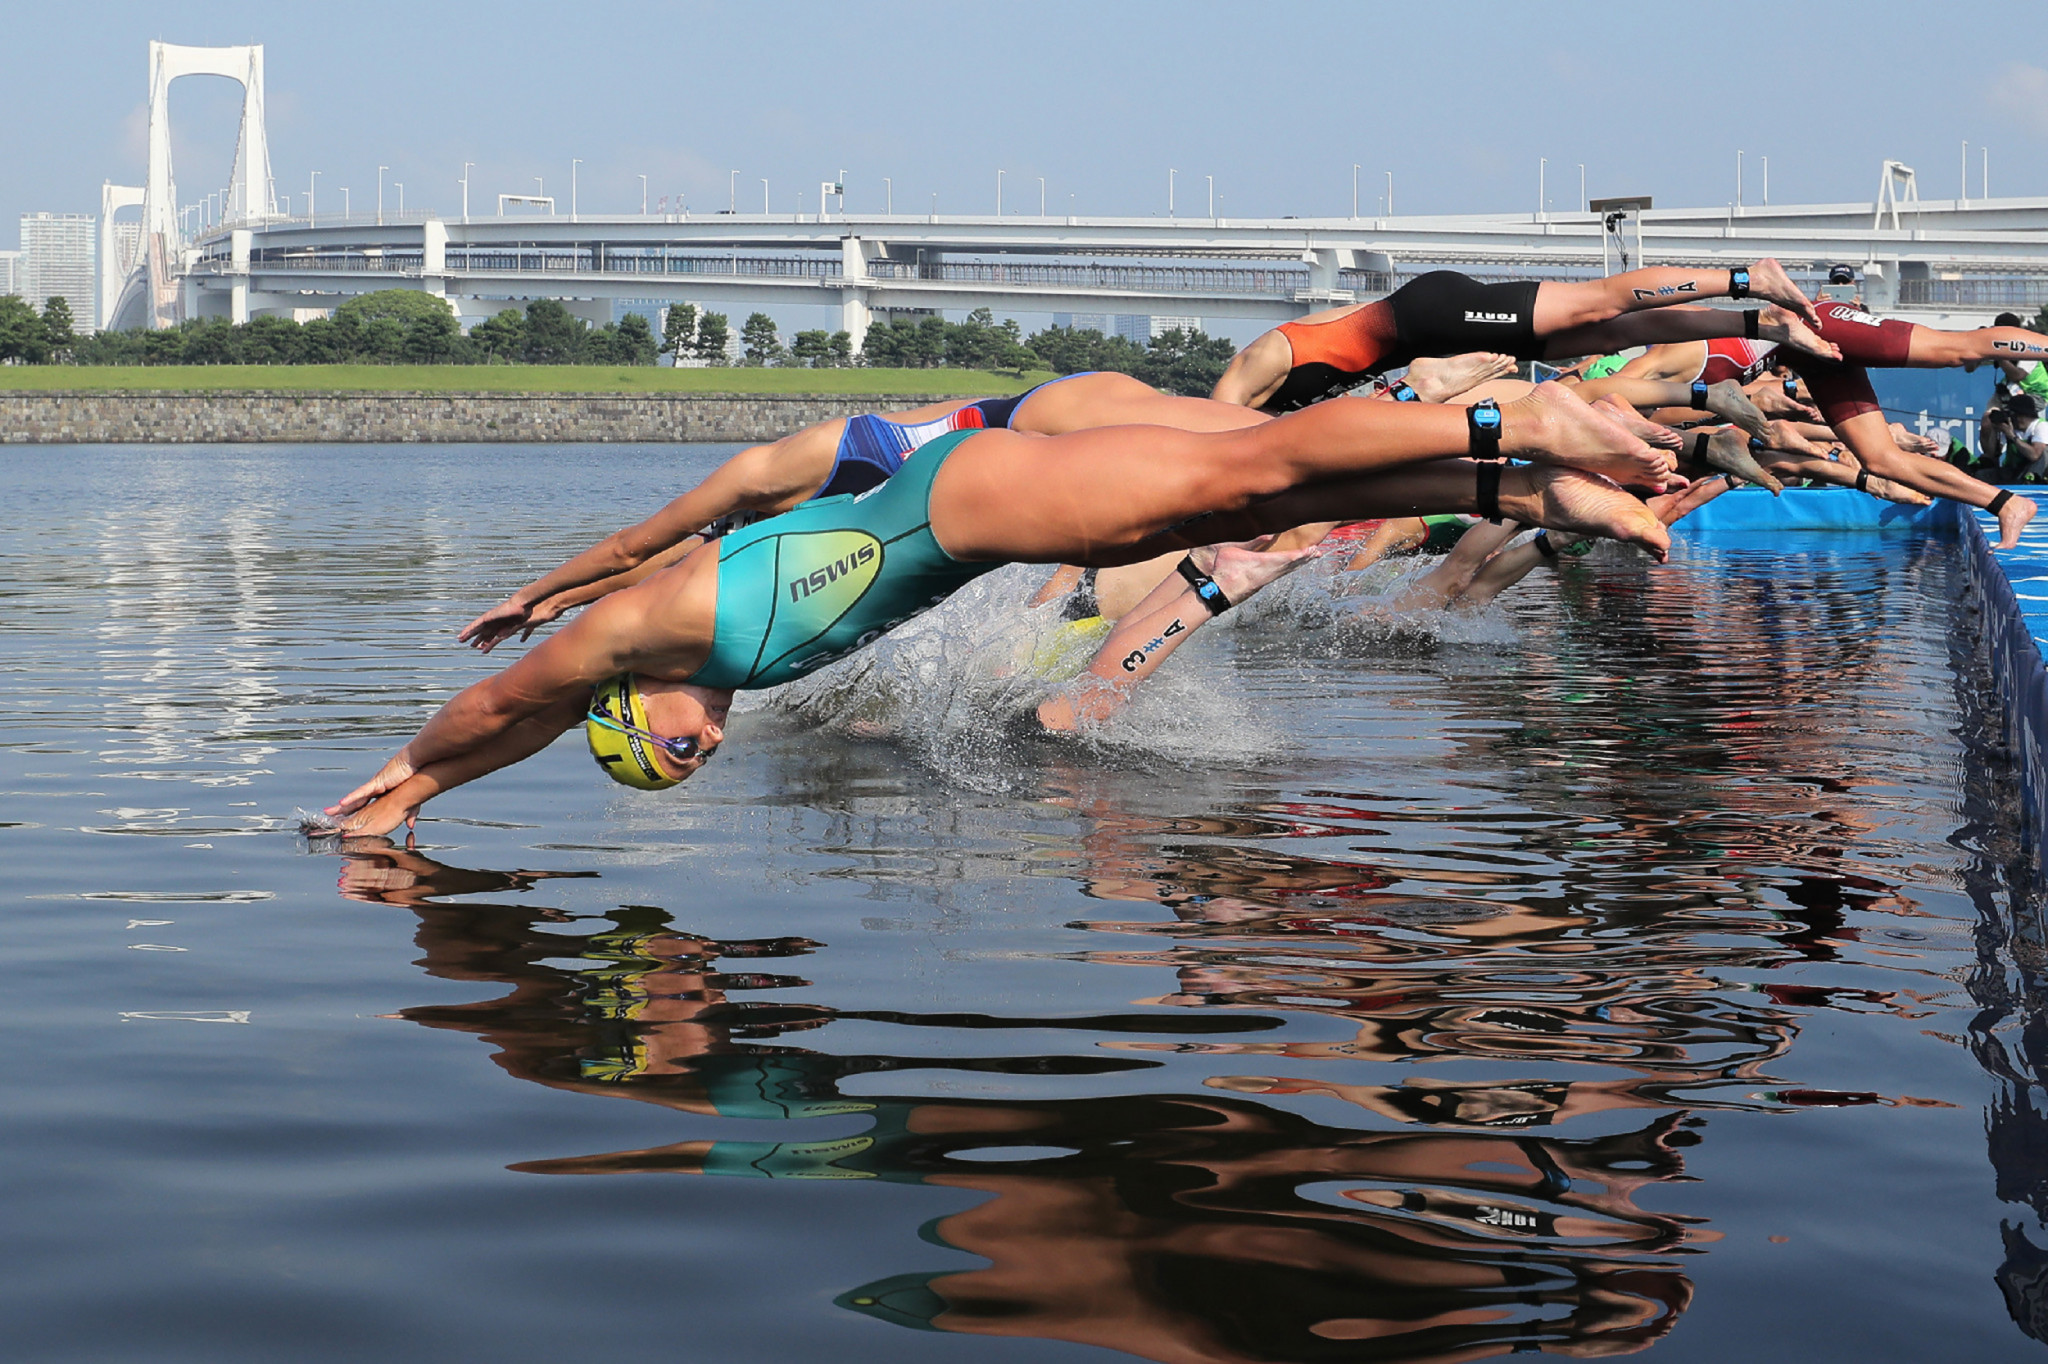 Tokyo 2020 triathlon and cross country eventing start times to move forward due to heat